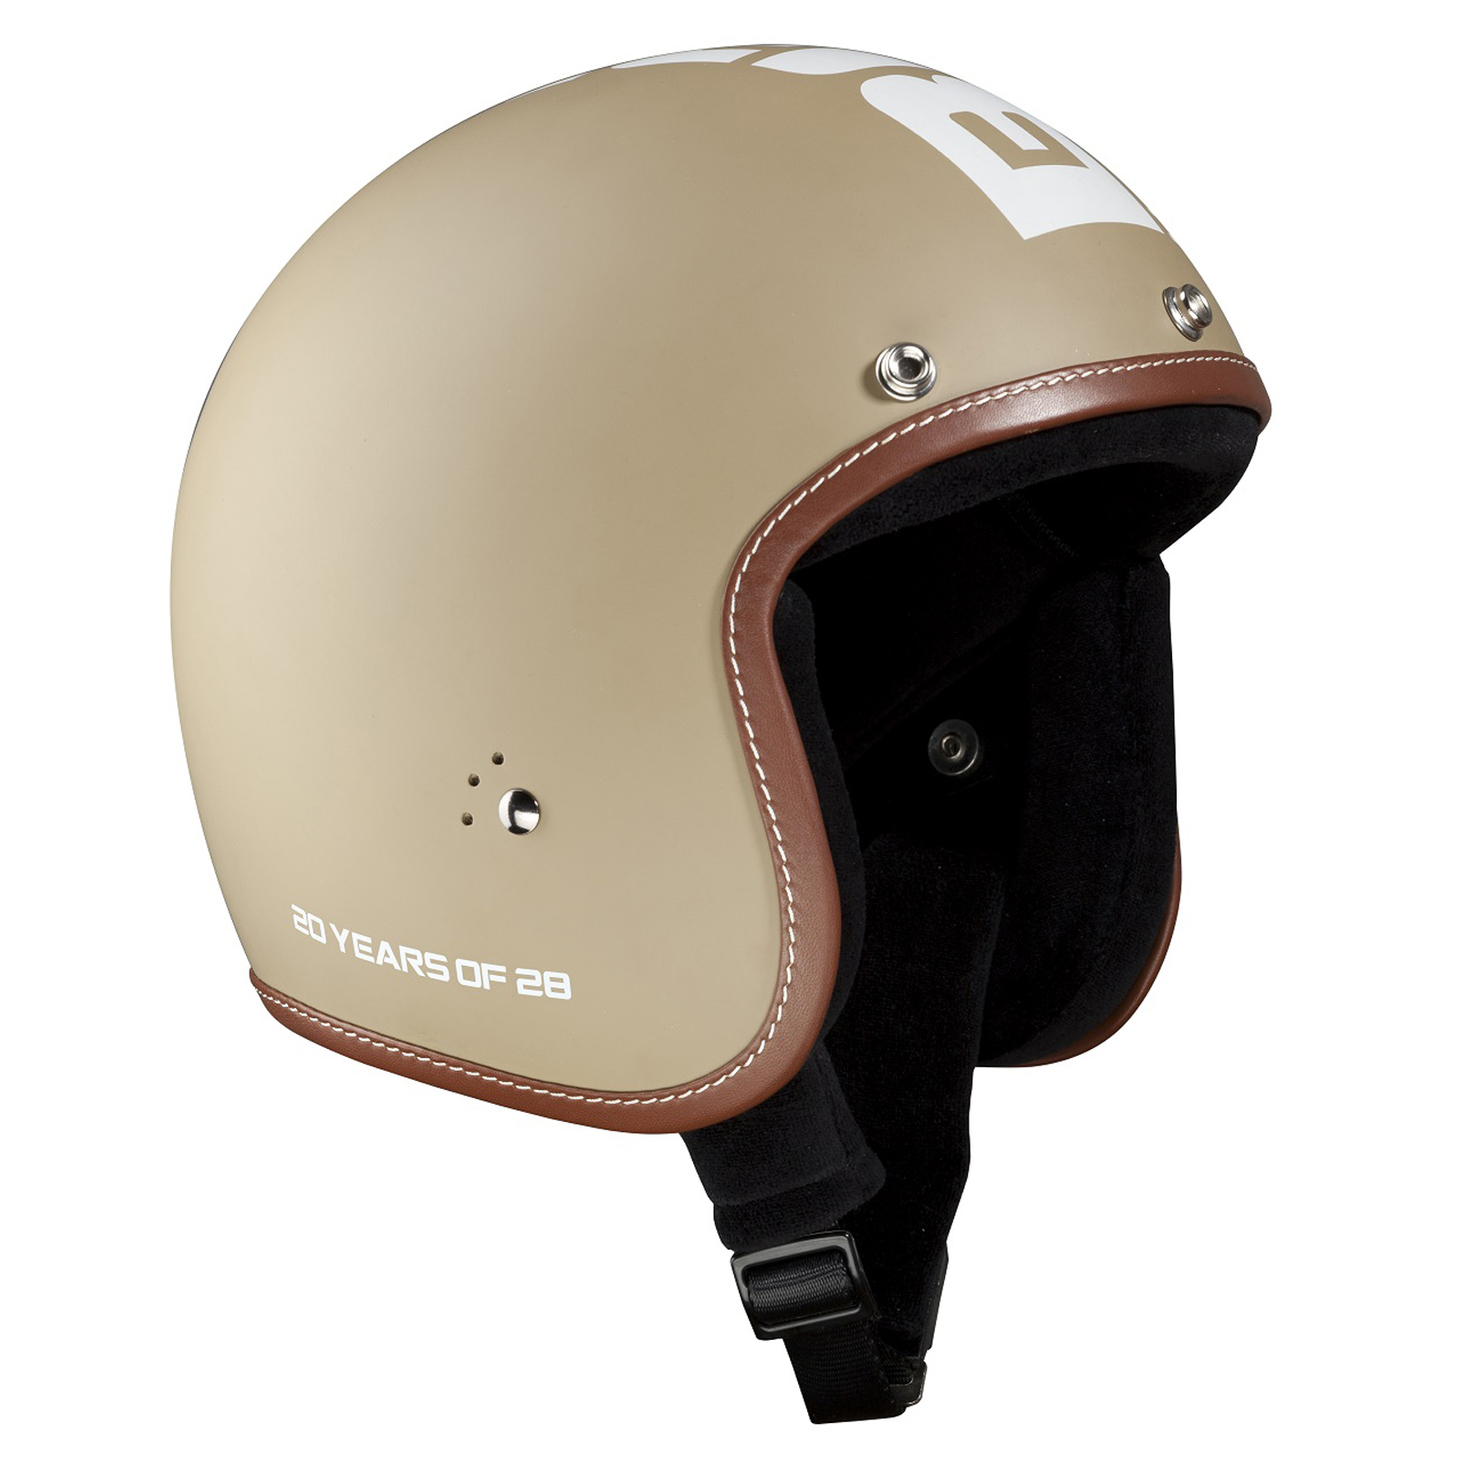 Bandit 20 Years Anniversary open face helmet – Picture 2